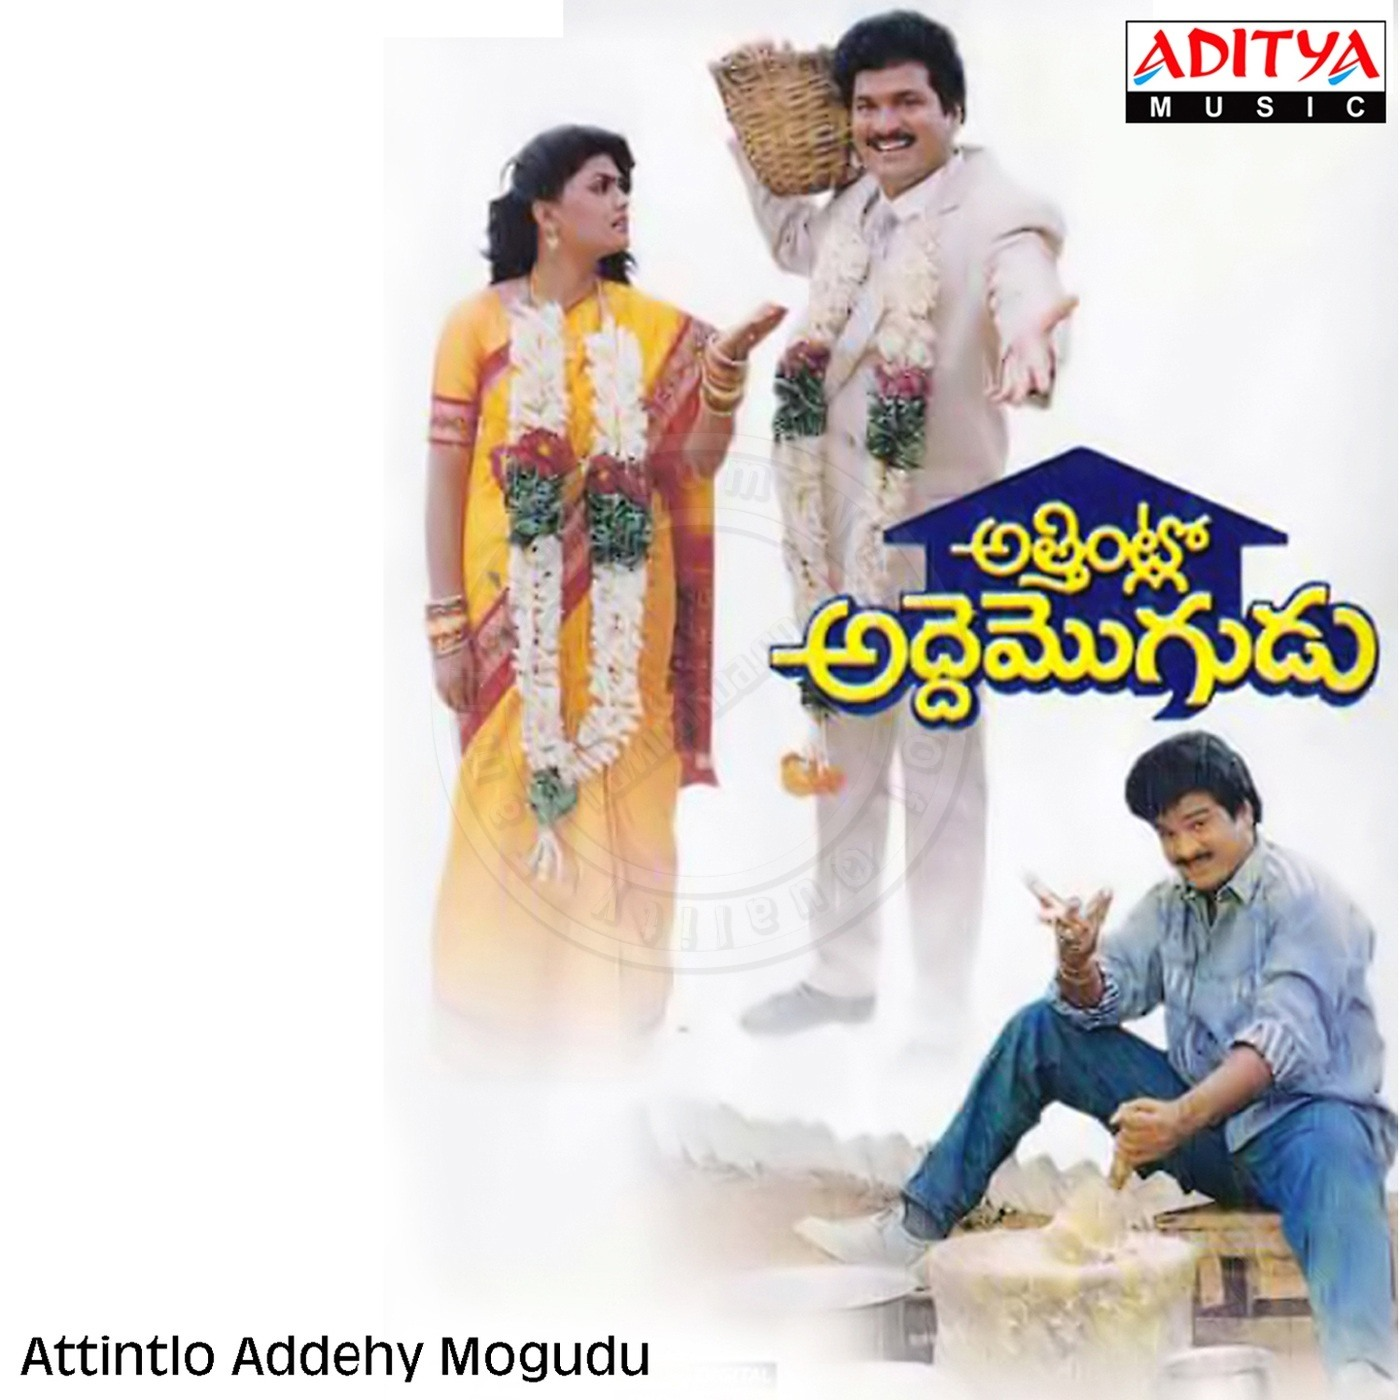 Attintlo Addehy Mogudu FLAC Songs